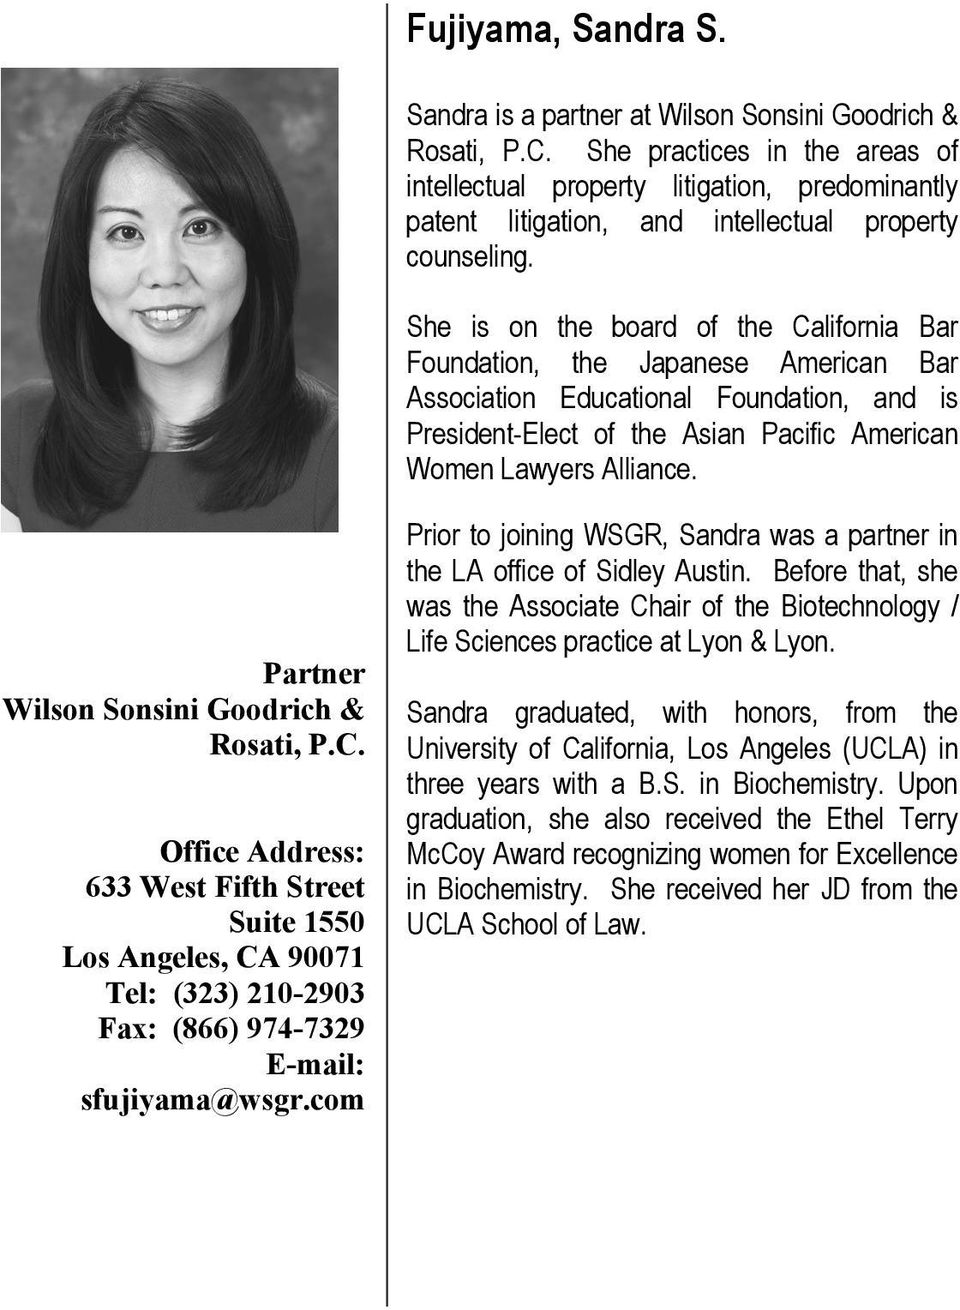 She practices in areas intellectual property litigation, predominantly patent She is litigation, on board intellectual California property Bar counseling.